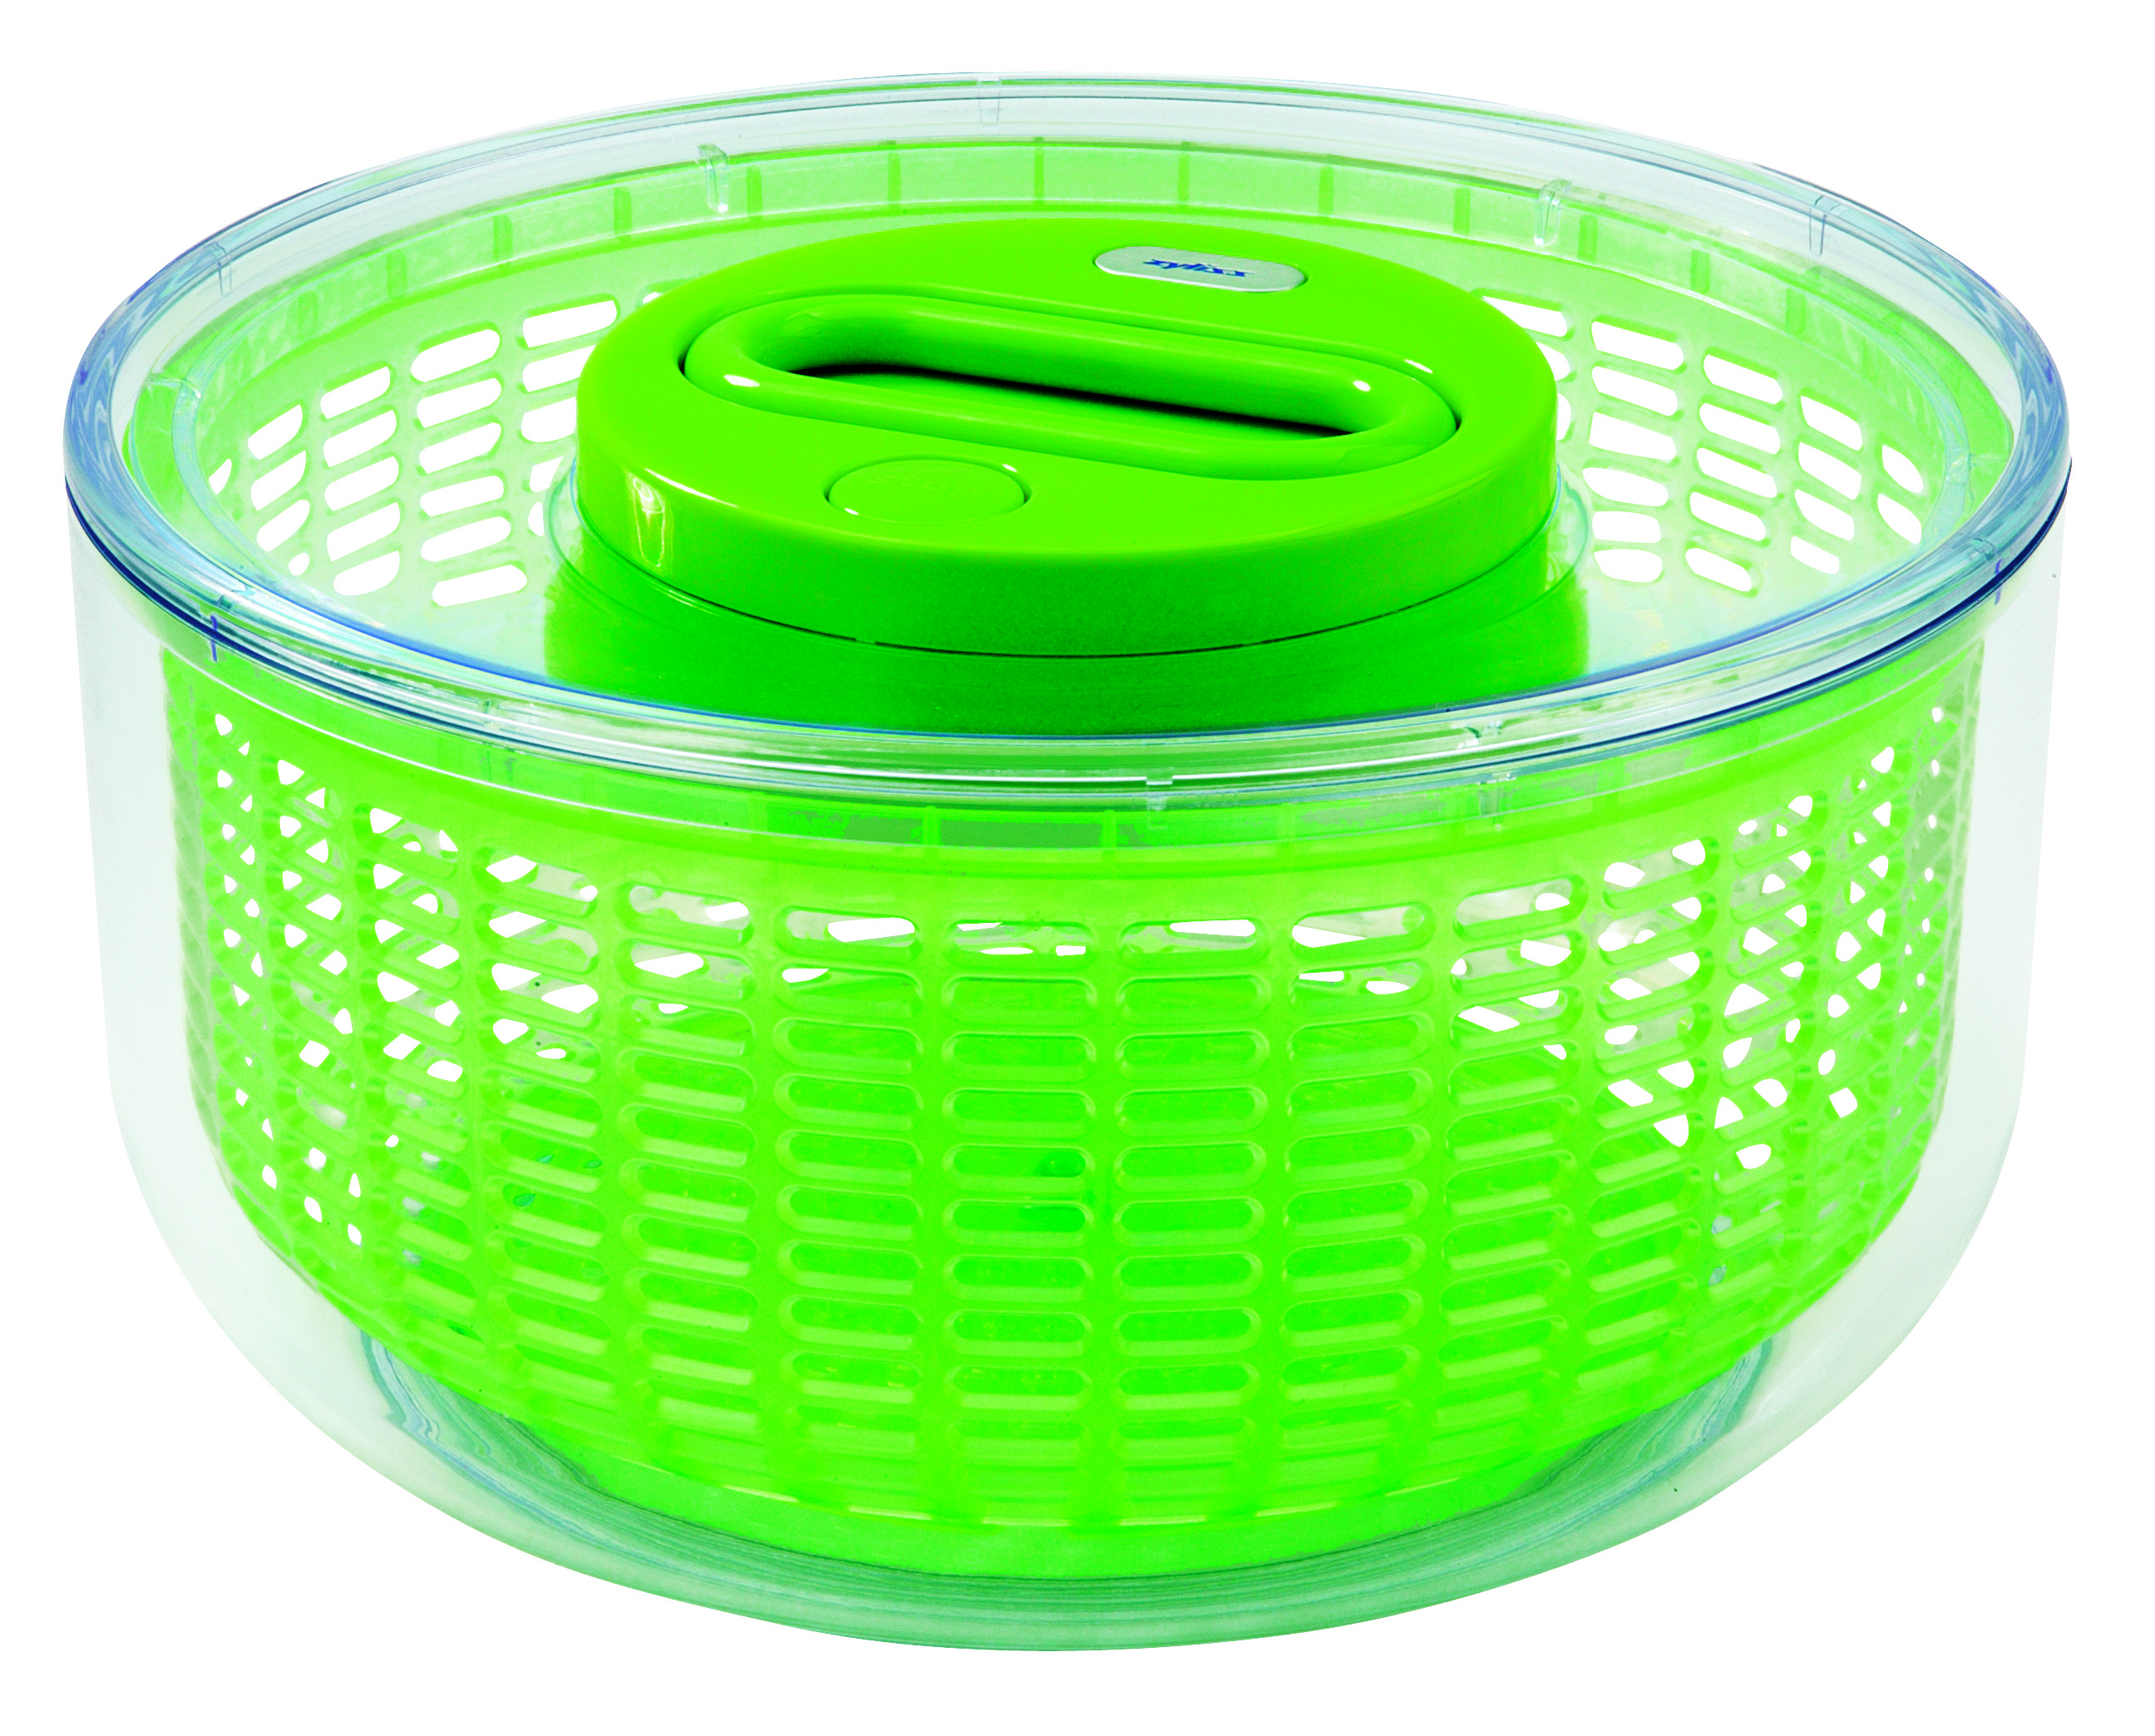 Zyliss Easy Spin Green 4-6 Serving Salad Spinner